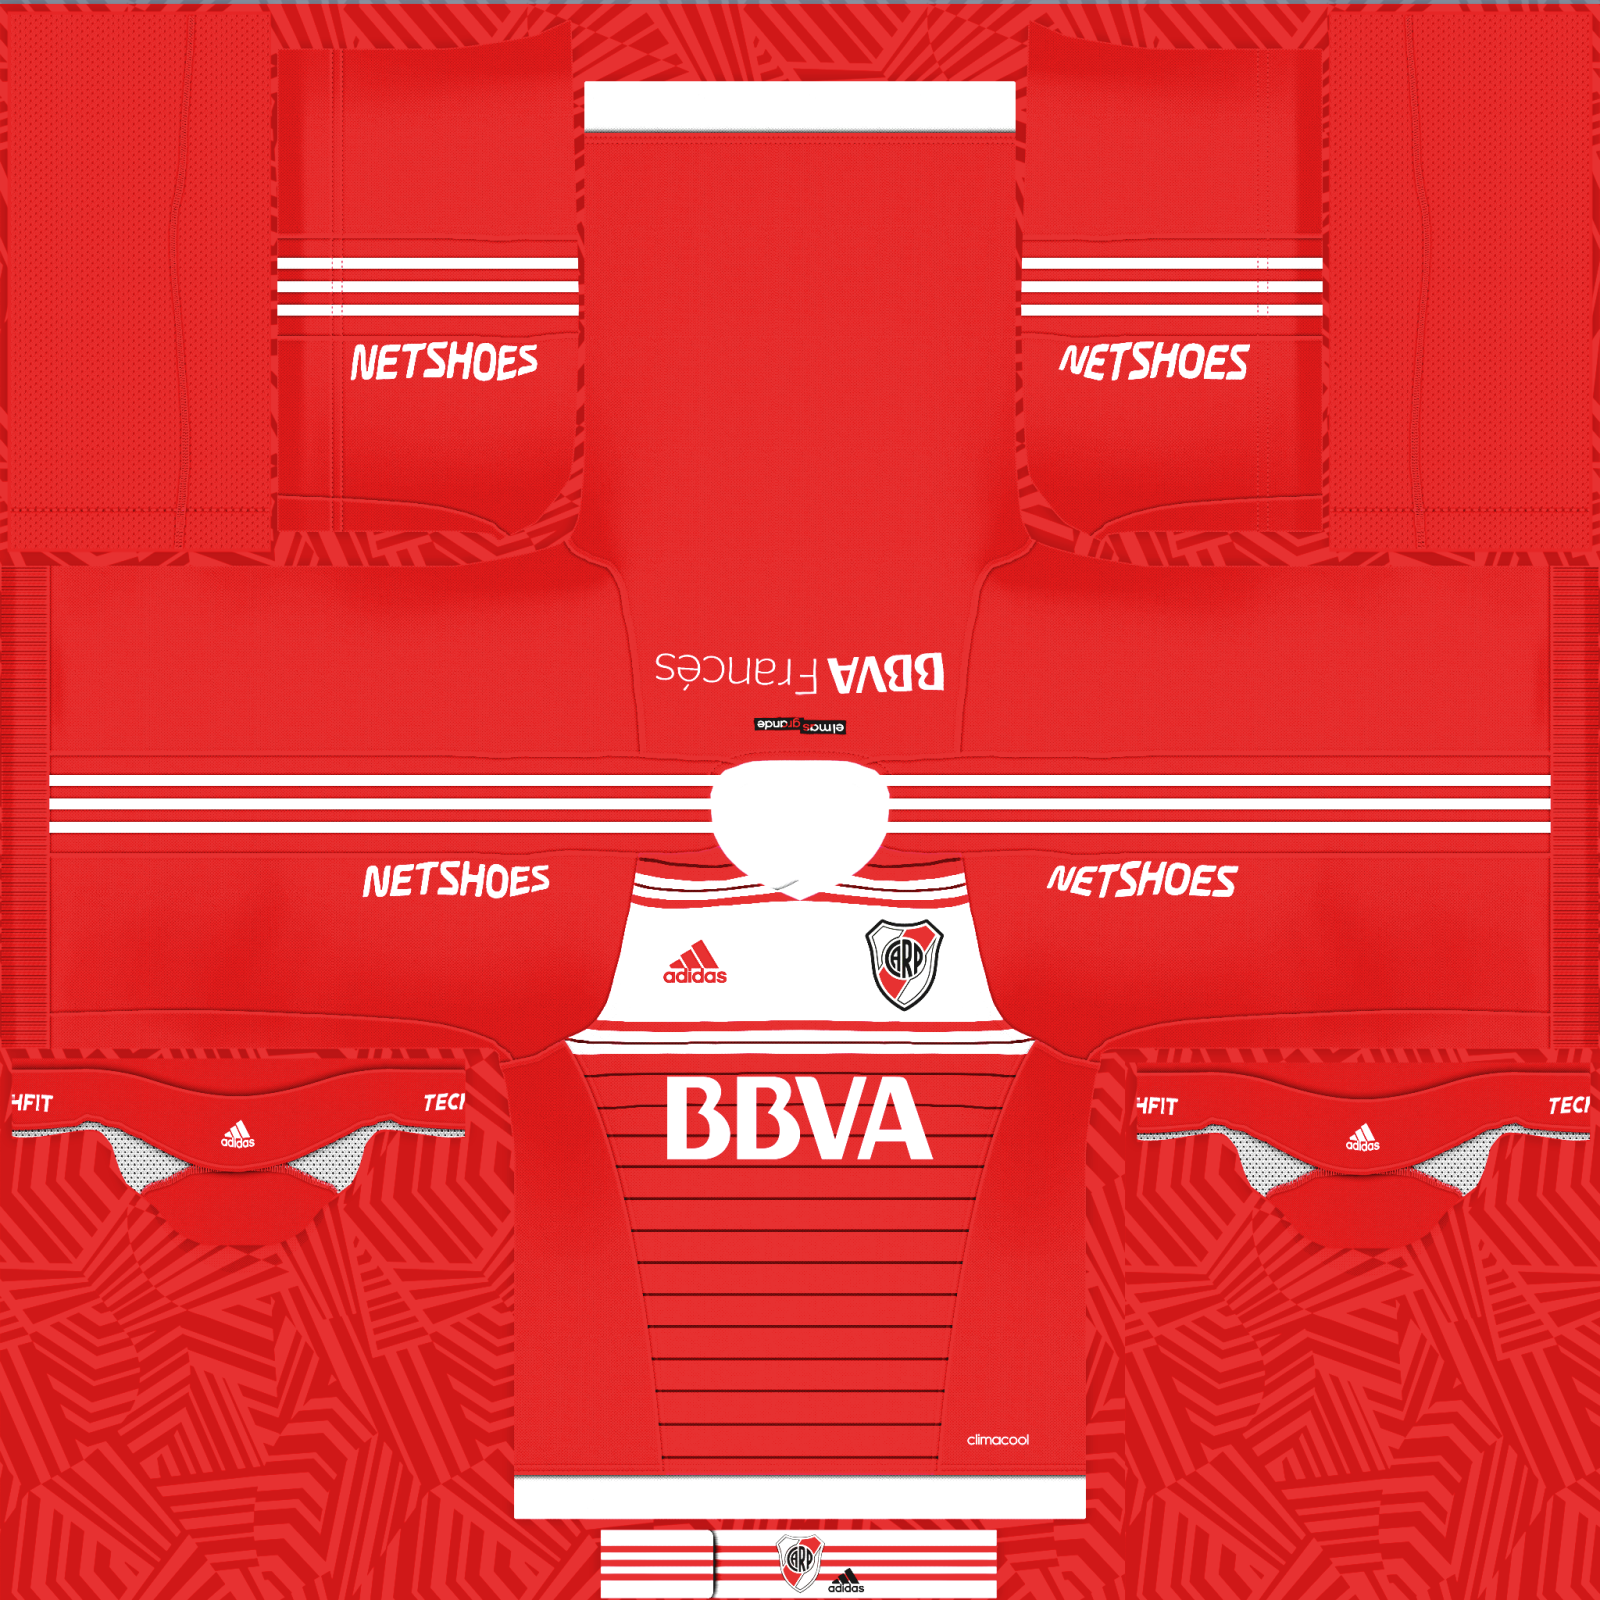 FULL CAMISETAS DE RIVER 2016 (TODAS) 4qnfrs